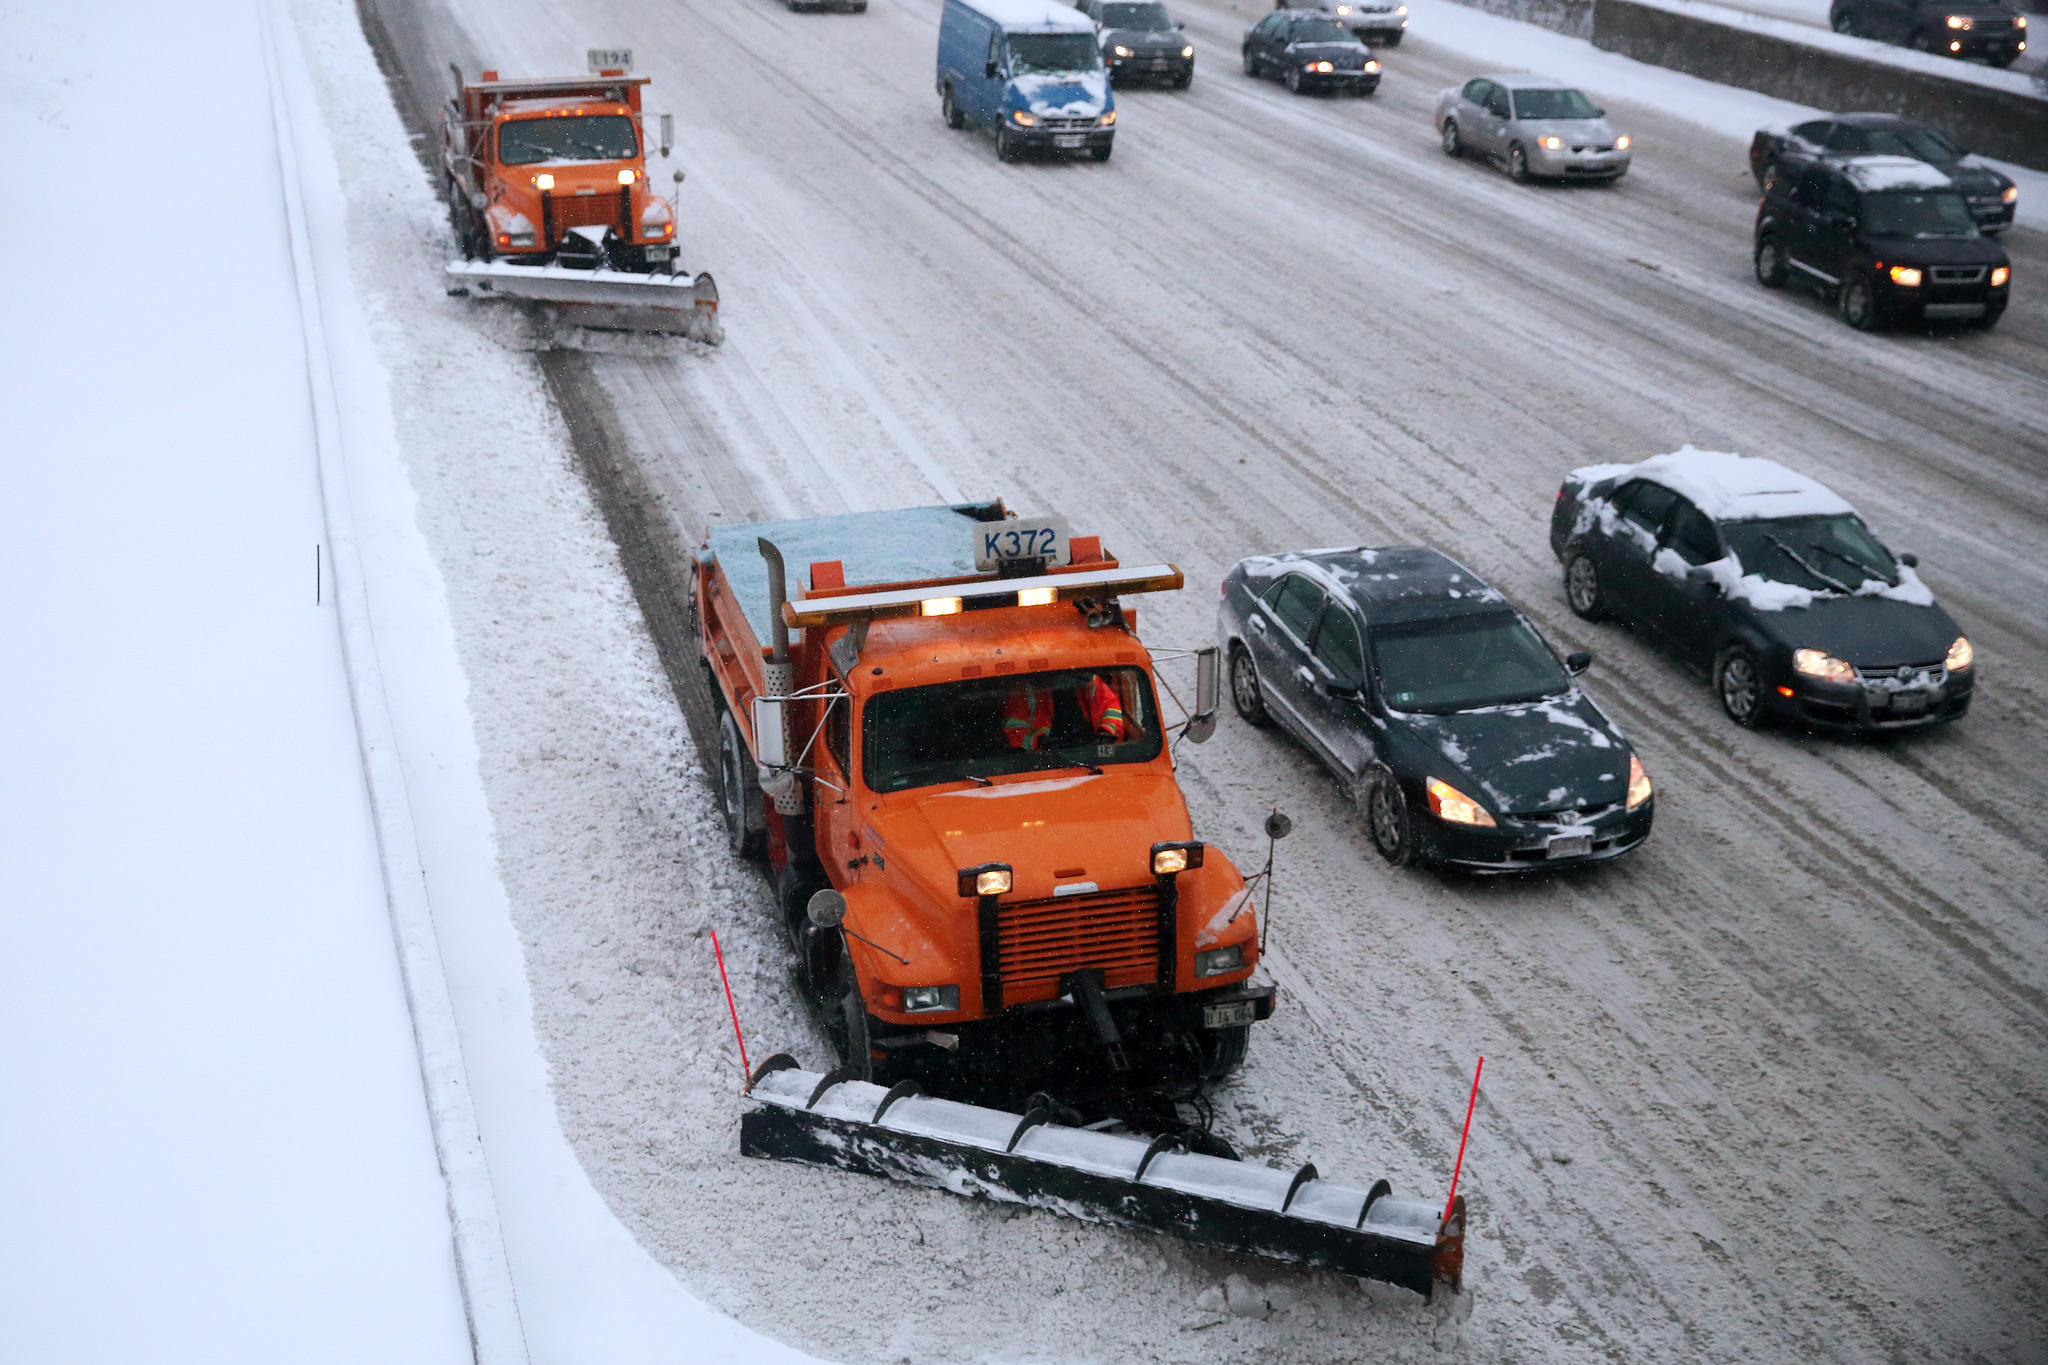 IDOT snow plows work to clear the snow covered roads and cover them with salt after an overnight snow storm covered the city Wednesday, Feb. 5, 2014 on the Kennedy Expressway in Chicago.